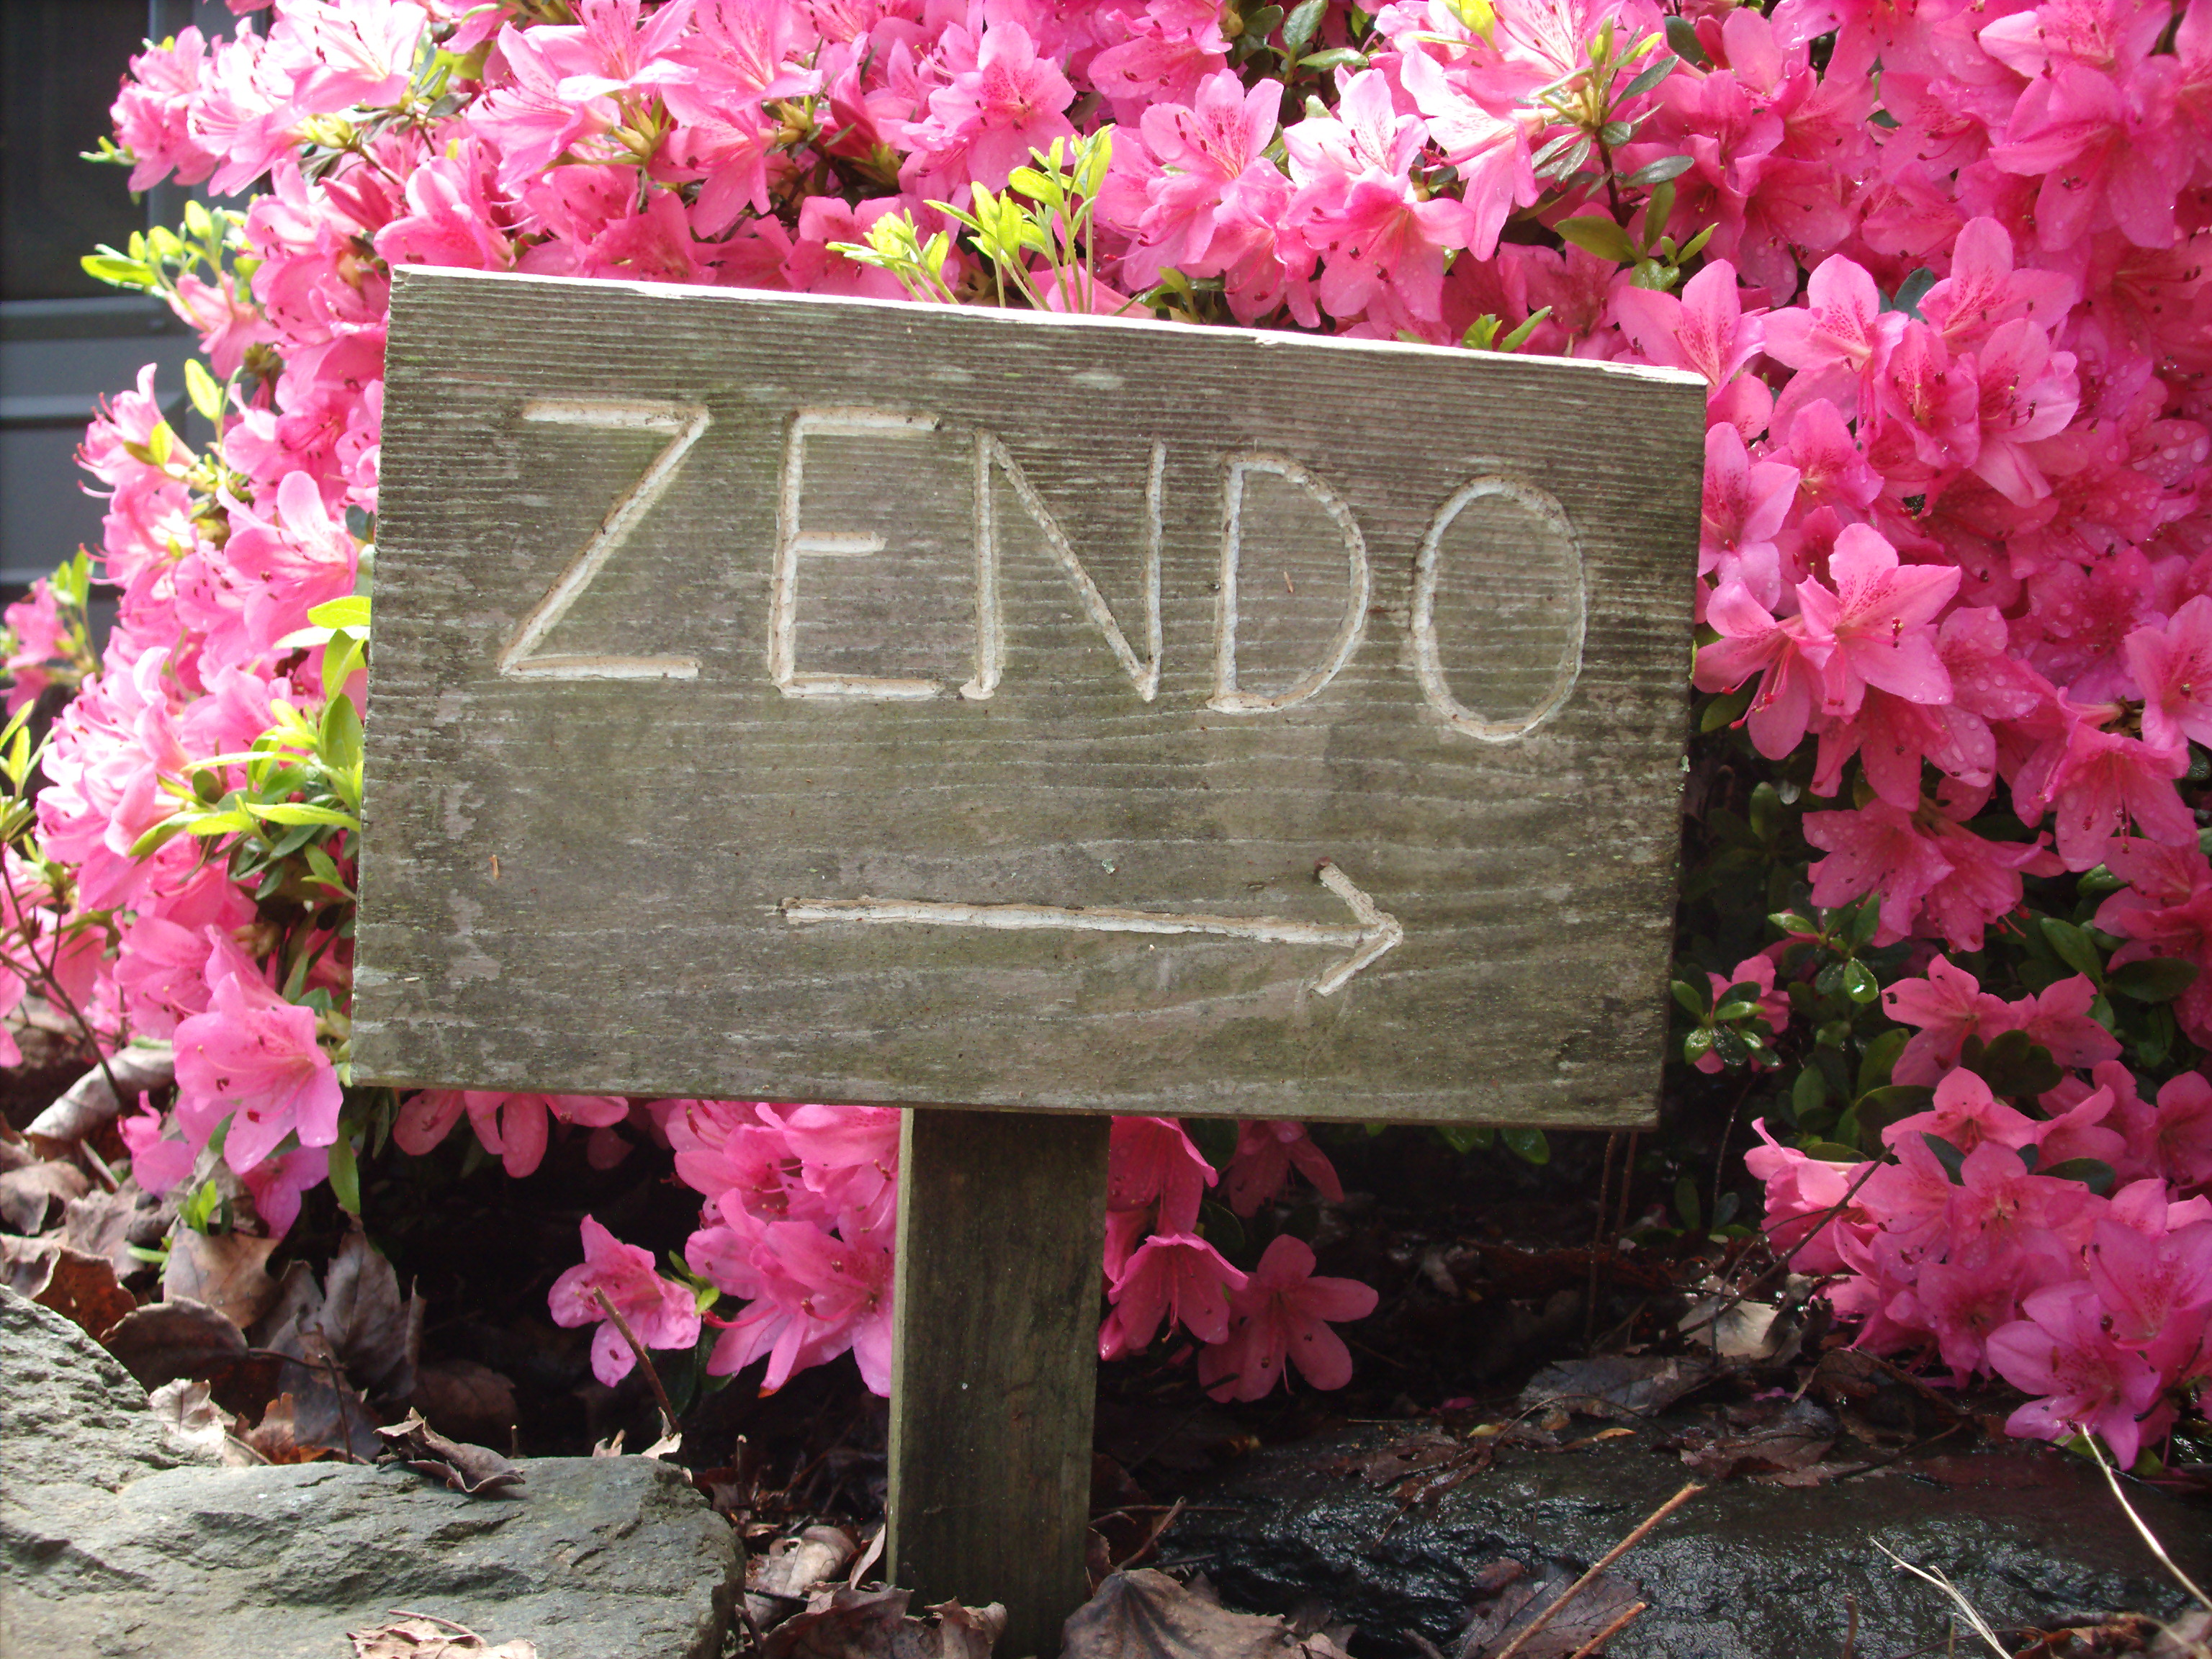 Where is the Zendo (in spring)?